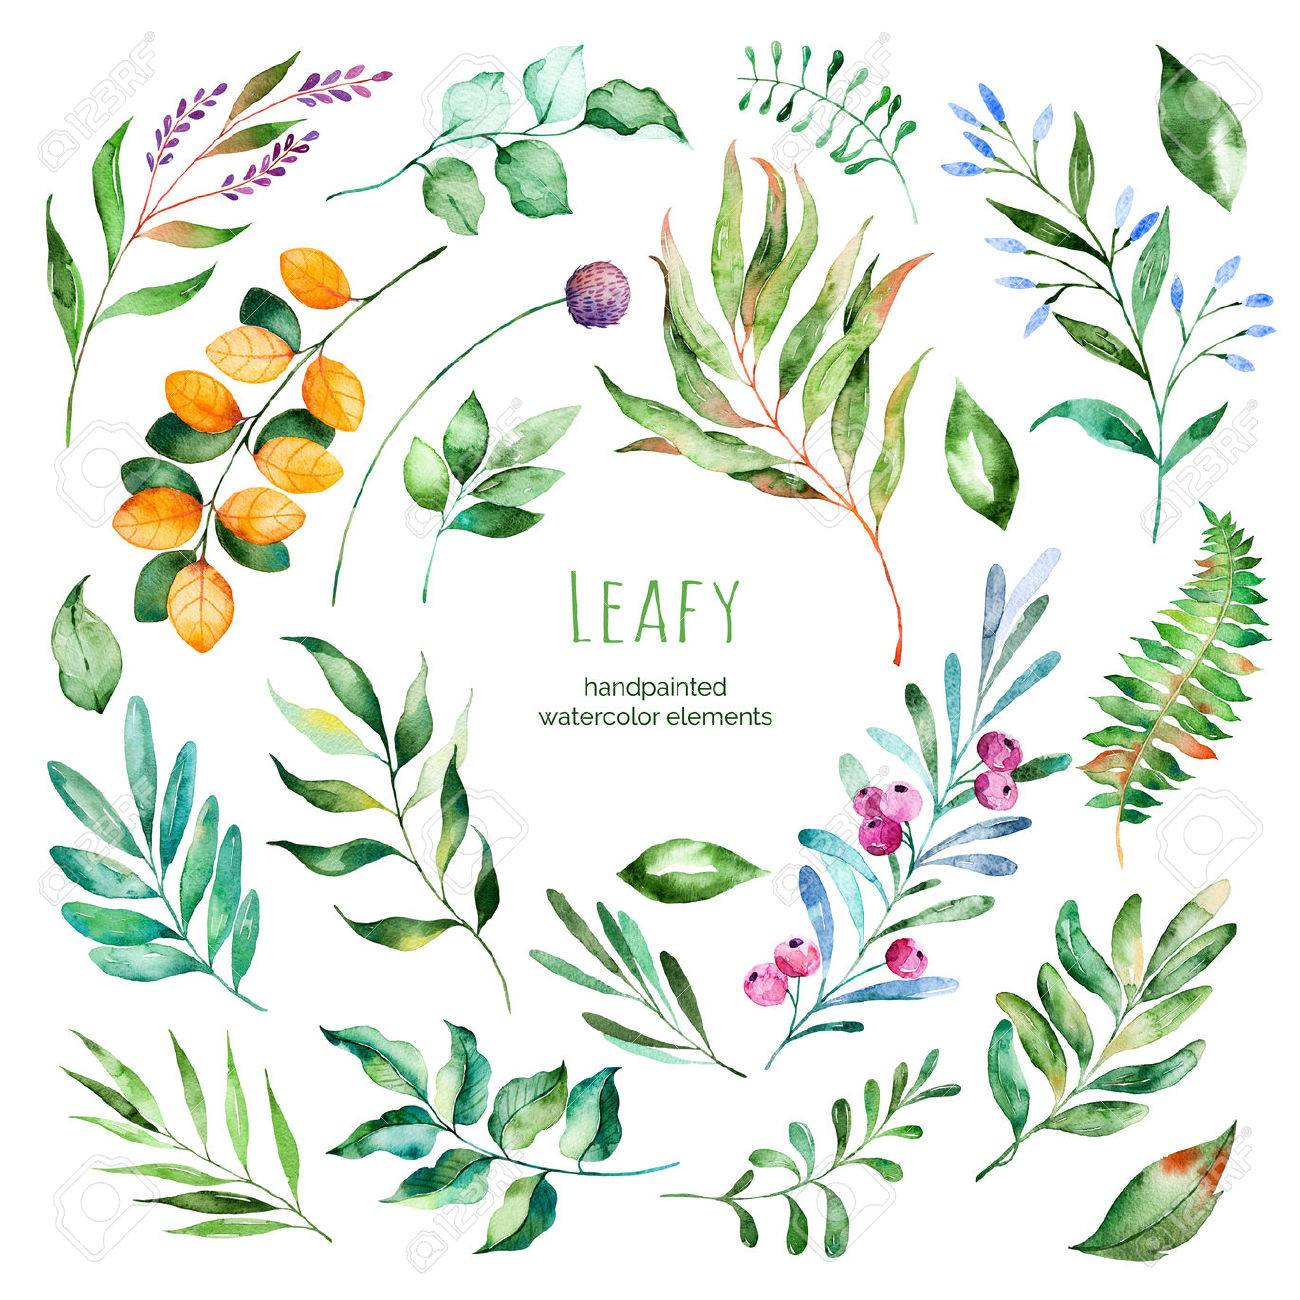 Leafy Collection22 Handpainted Floral Watercolor ElementsWatercolor Leaves Branches Berries